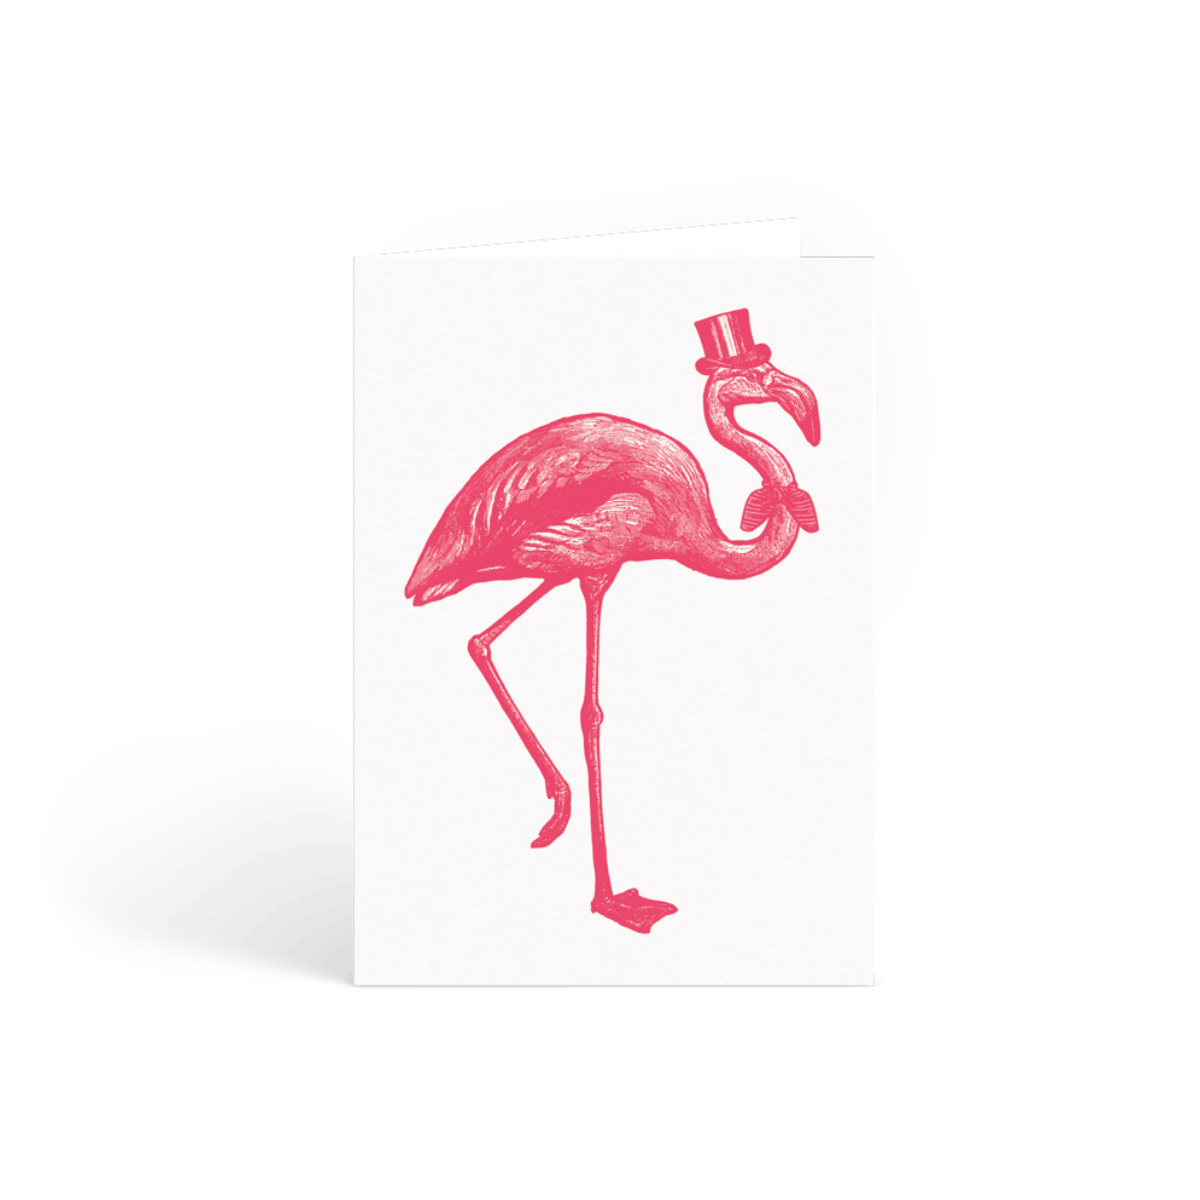 Https%3a%2f%2fwww.papier.com%2fproduct image%2f12959%2f2%2fsophisticated flamingo 3268 vorderseite 1477920848.png?ixlib=rb 1.1